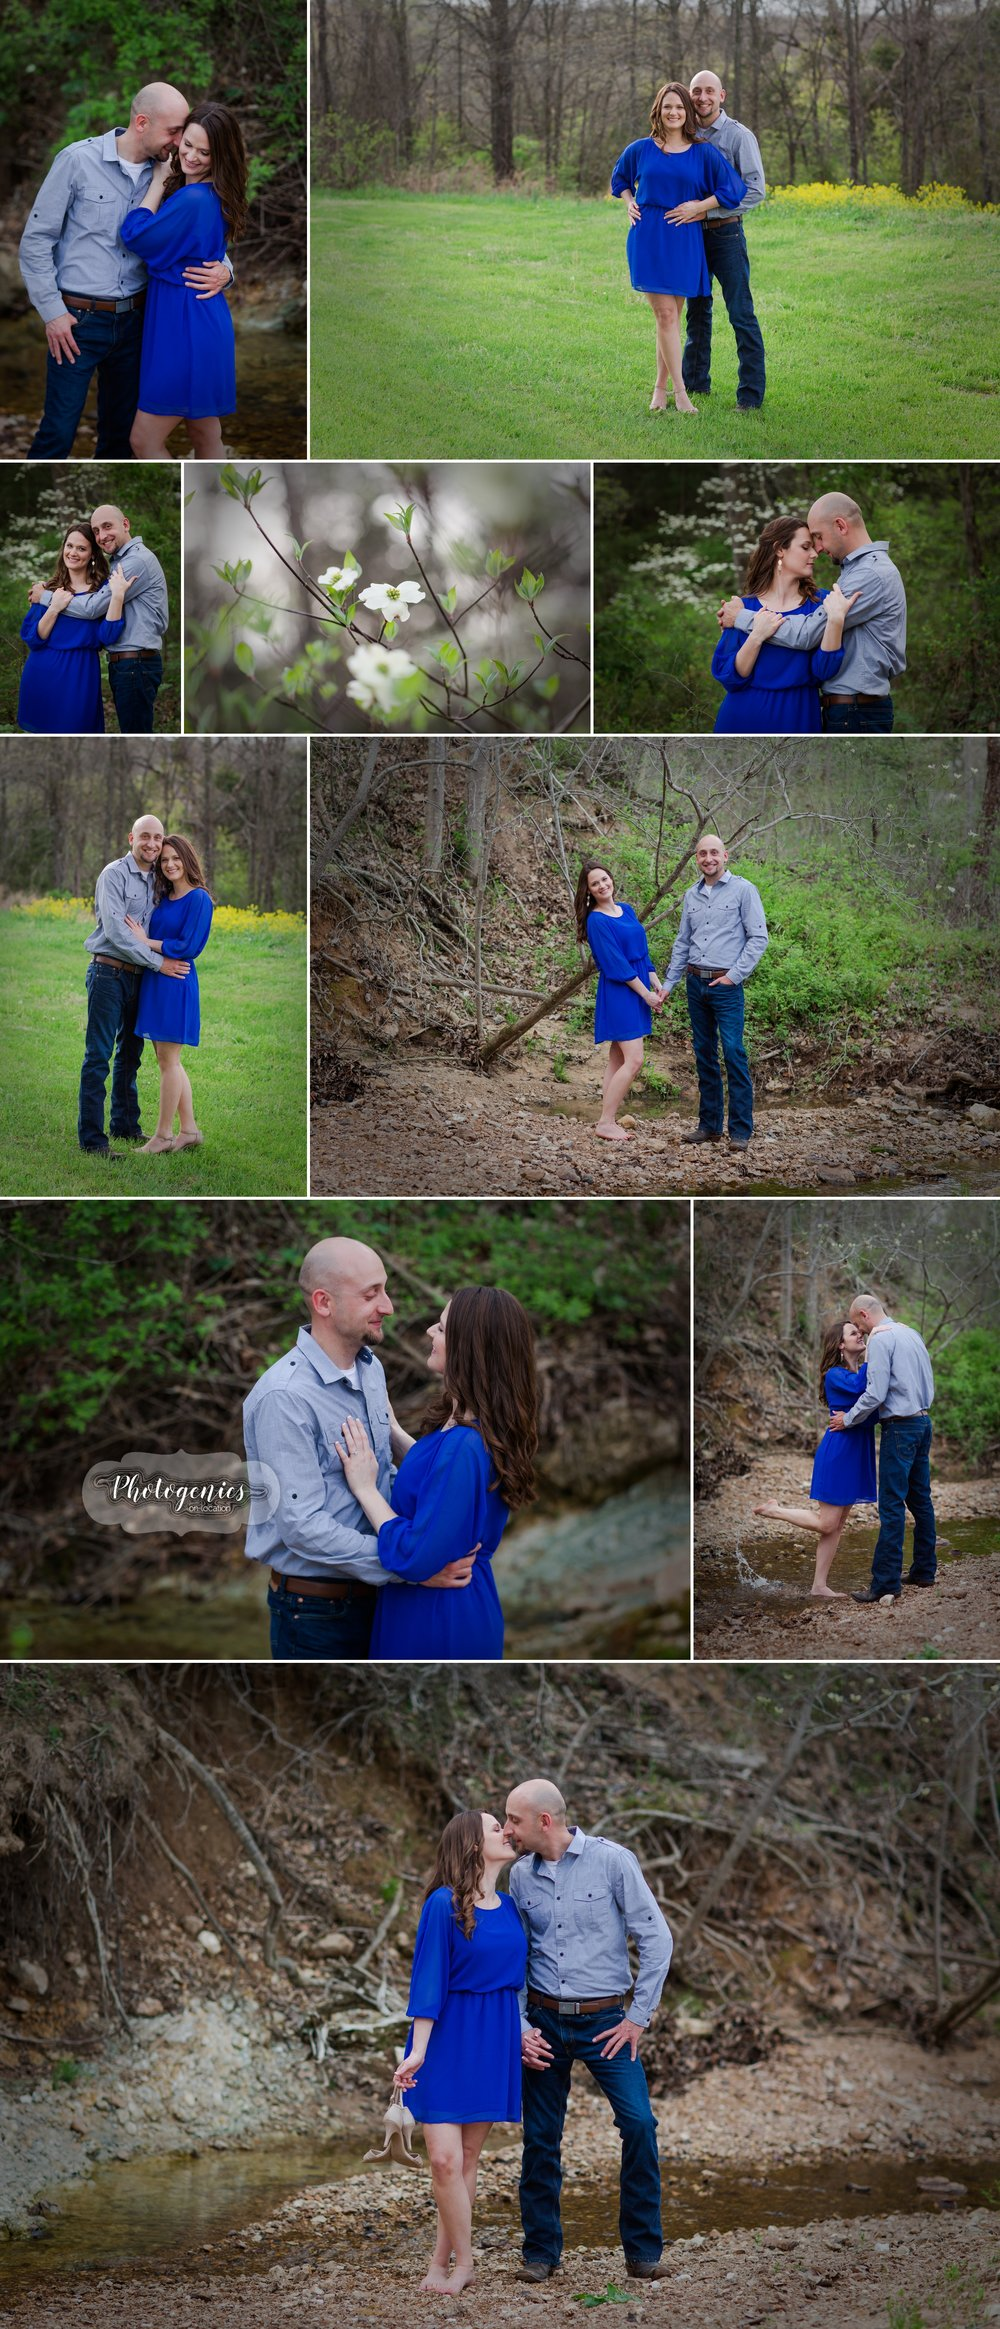 engagement_session_spring_country_creek_water_poses_evening_light_lake_sunset_ideas_simple_variety_unique